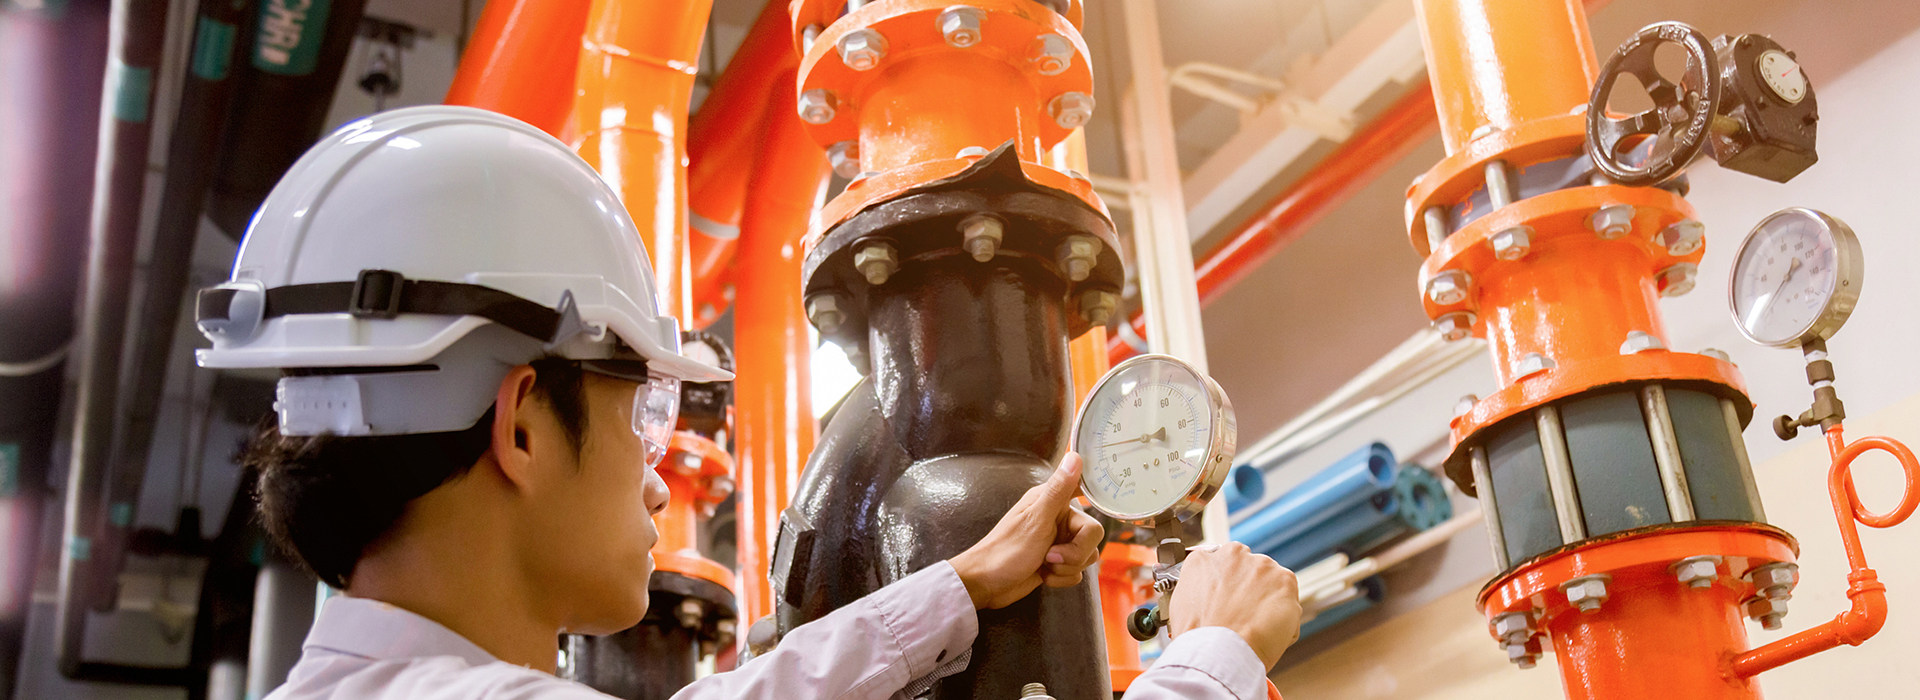 Man working with HVAC equipment in industrial setting